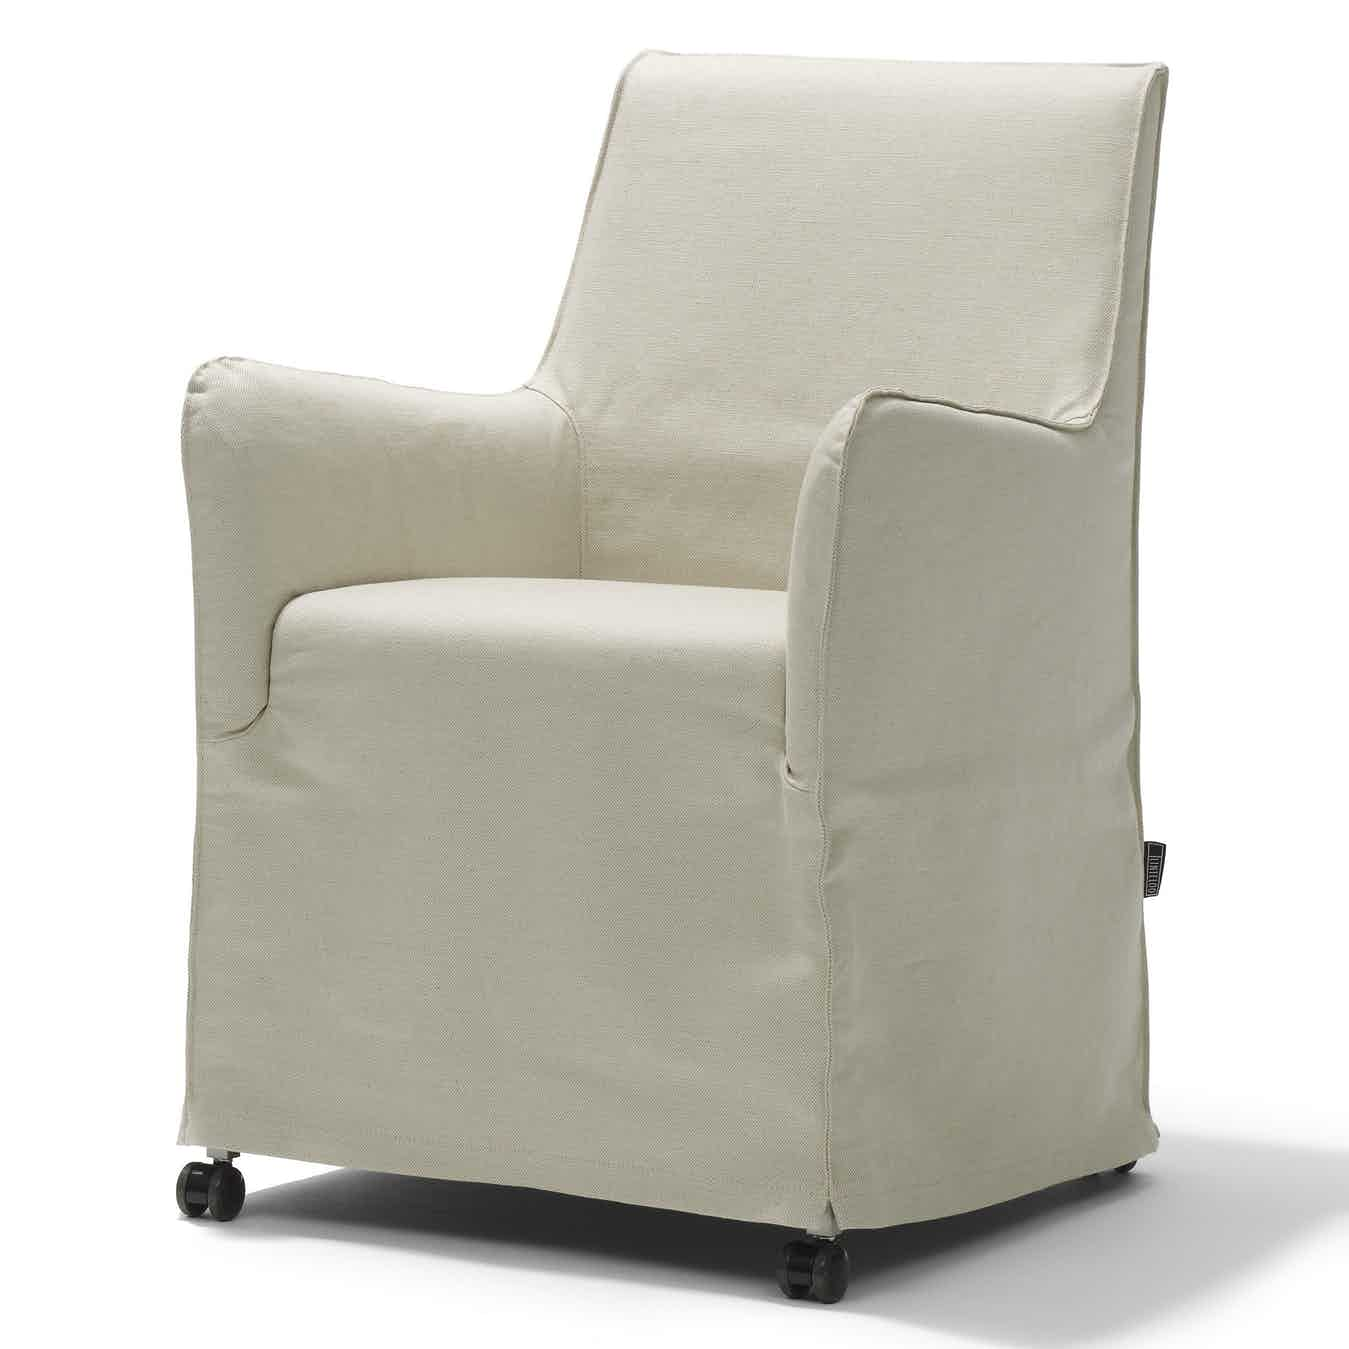 Linteloo-two-guilietta-chair-haute-living